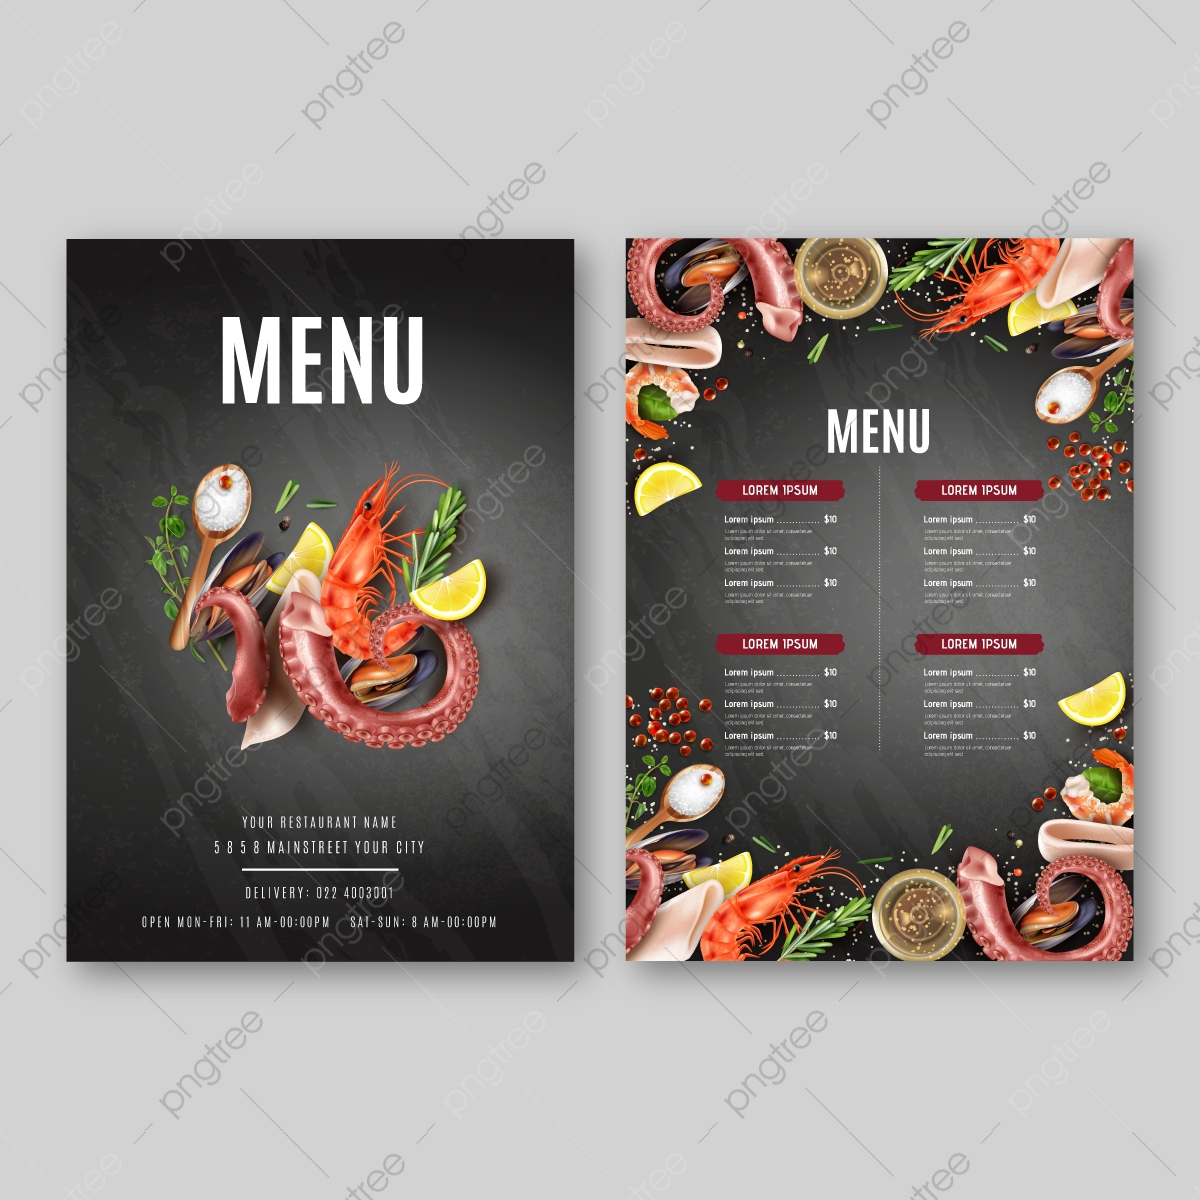 Restaurant Cafe First Food Menu Template Design Food Flyer Restaurant Food Menu Design With Chalkboard Background Menu Design Template With Colorful Pattern Restaurant Cafe Menu Template Template Download On Pngtree